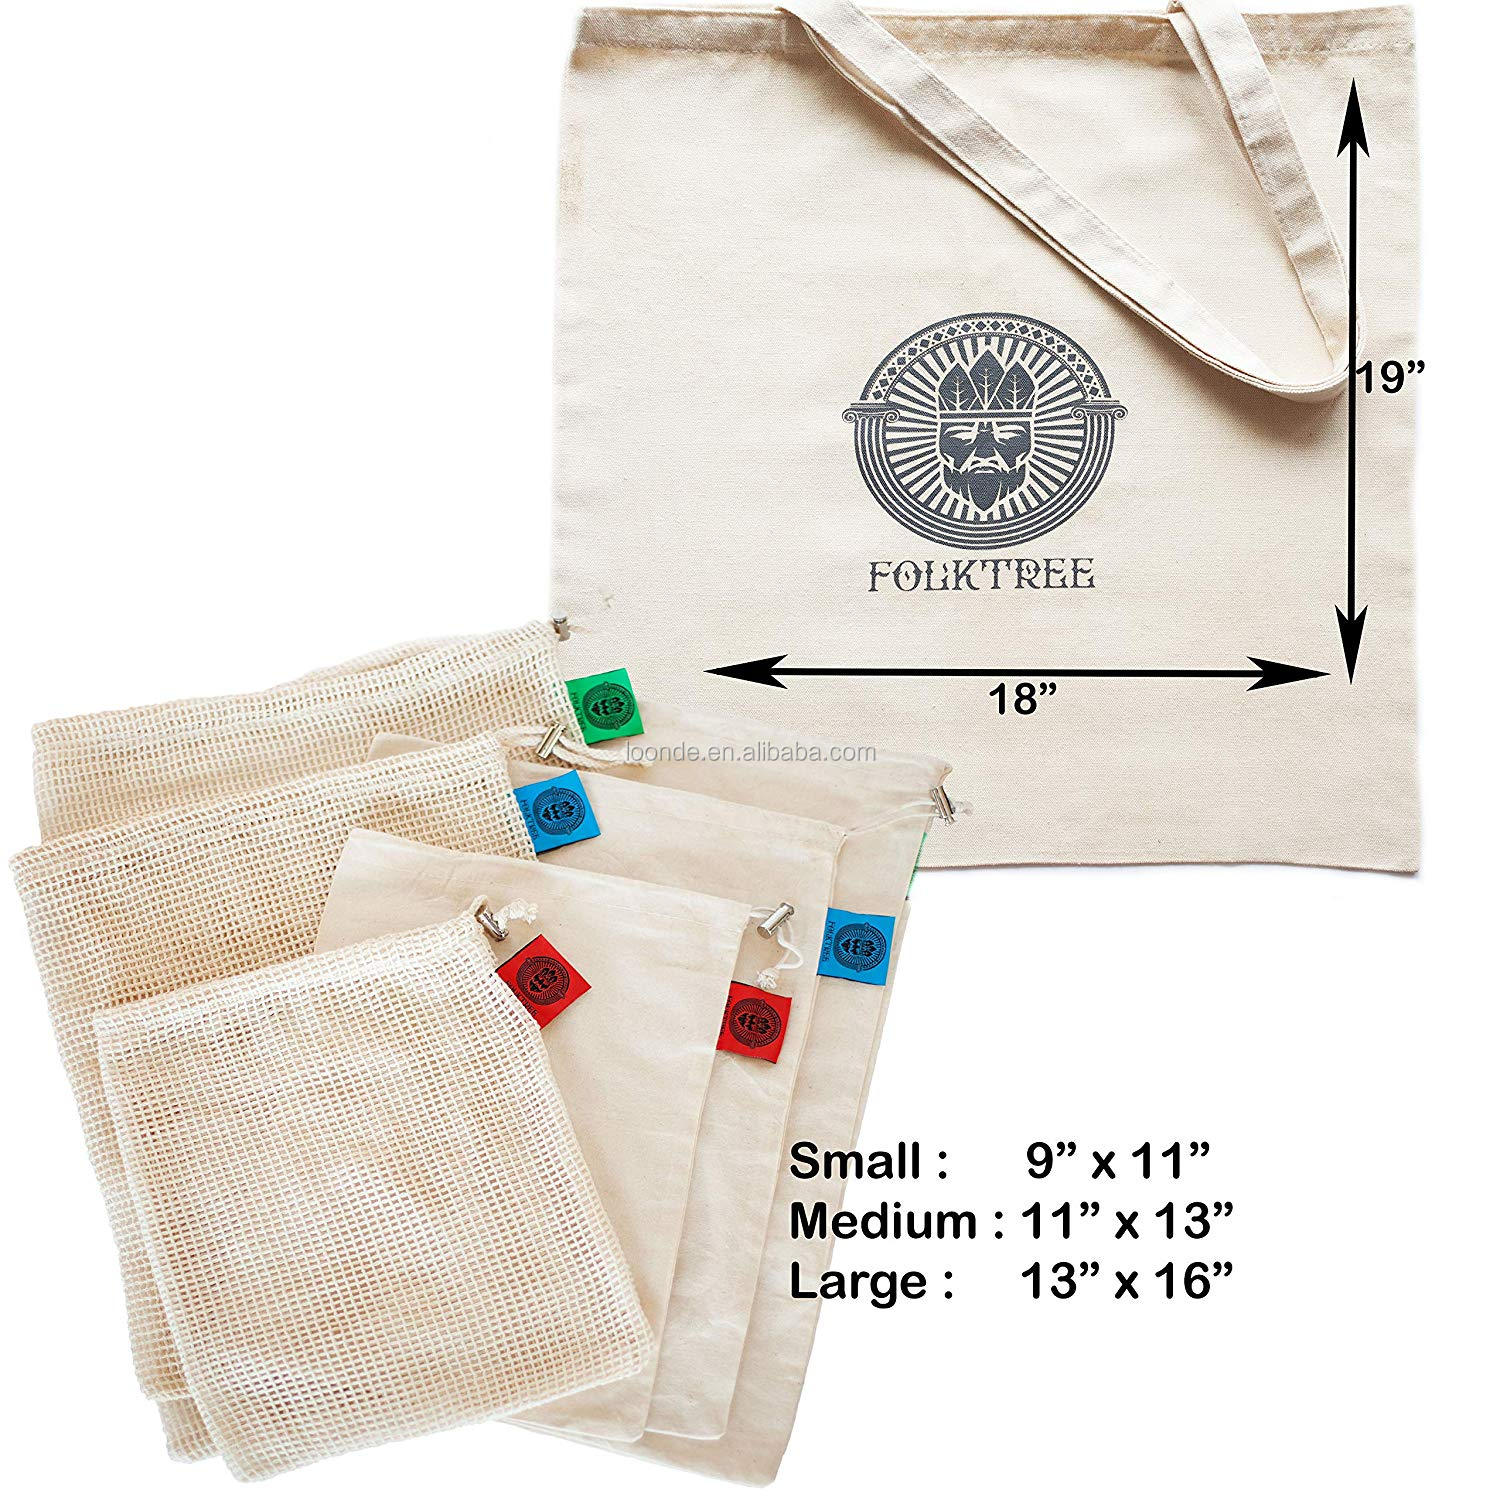 Reusable Mesh Produce Bags 3 Mesh & 3 Muslin Pouches + 1 Large Canvas Tote Washable Biodegradable Durable